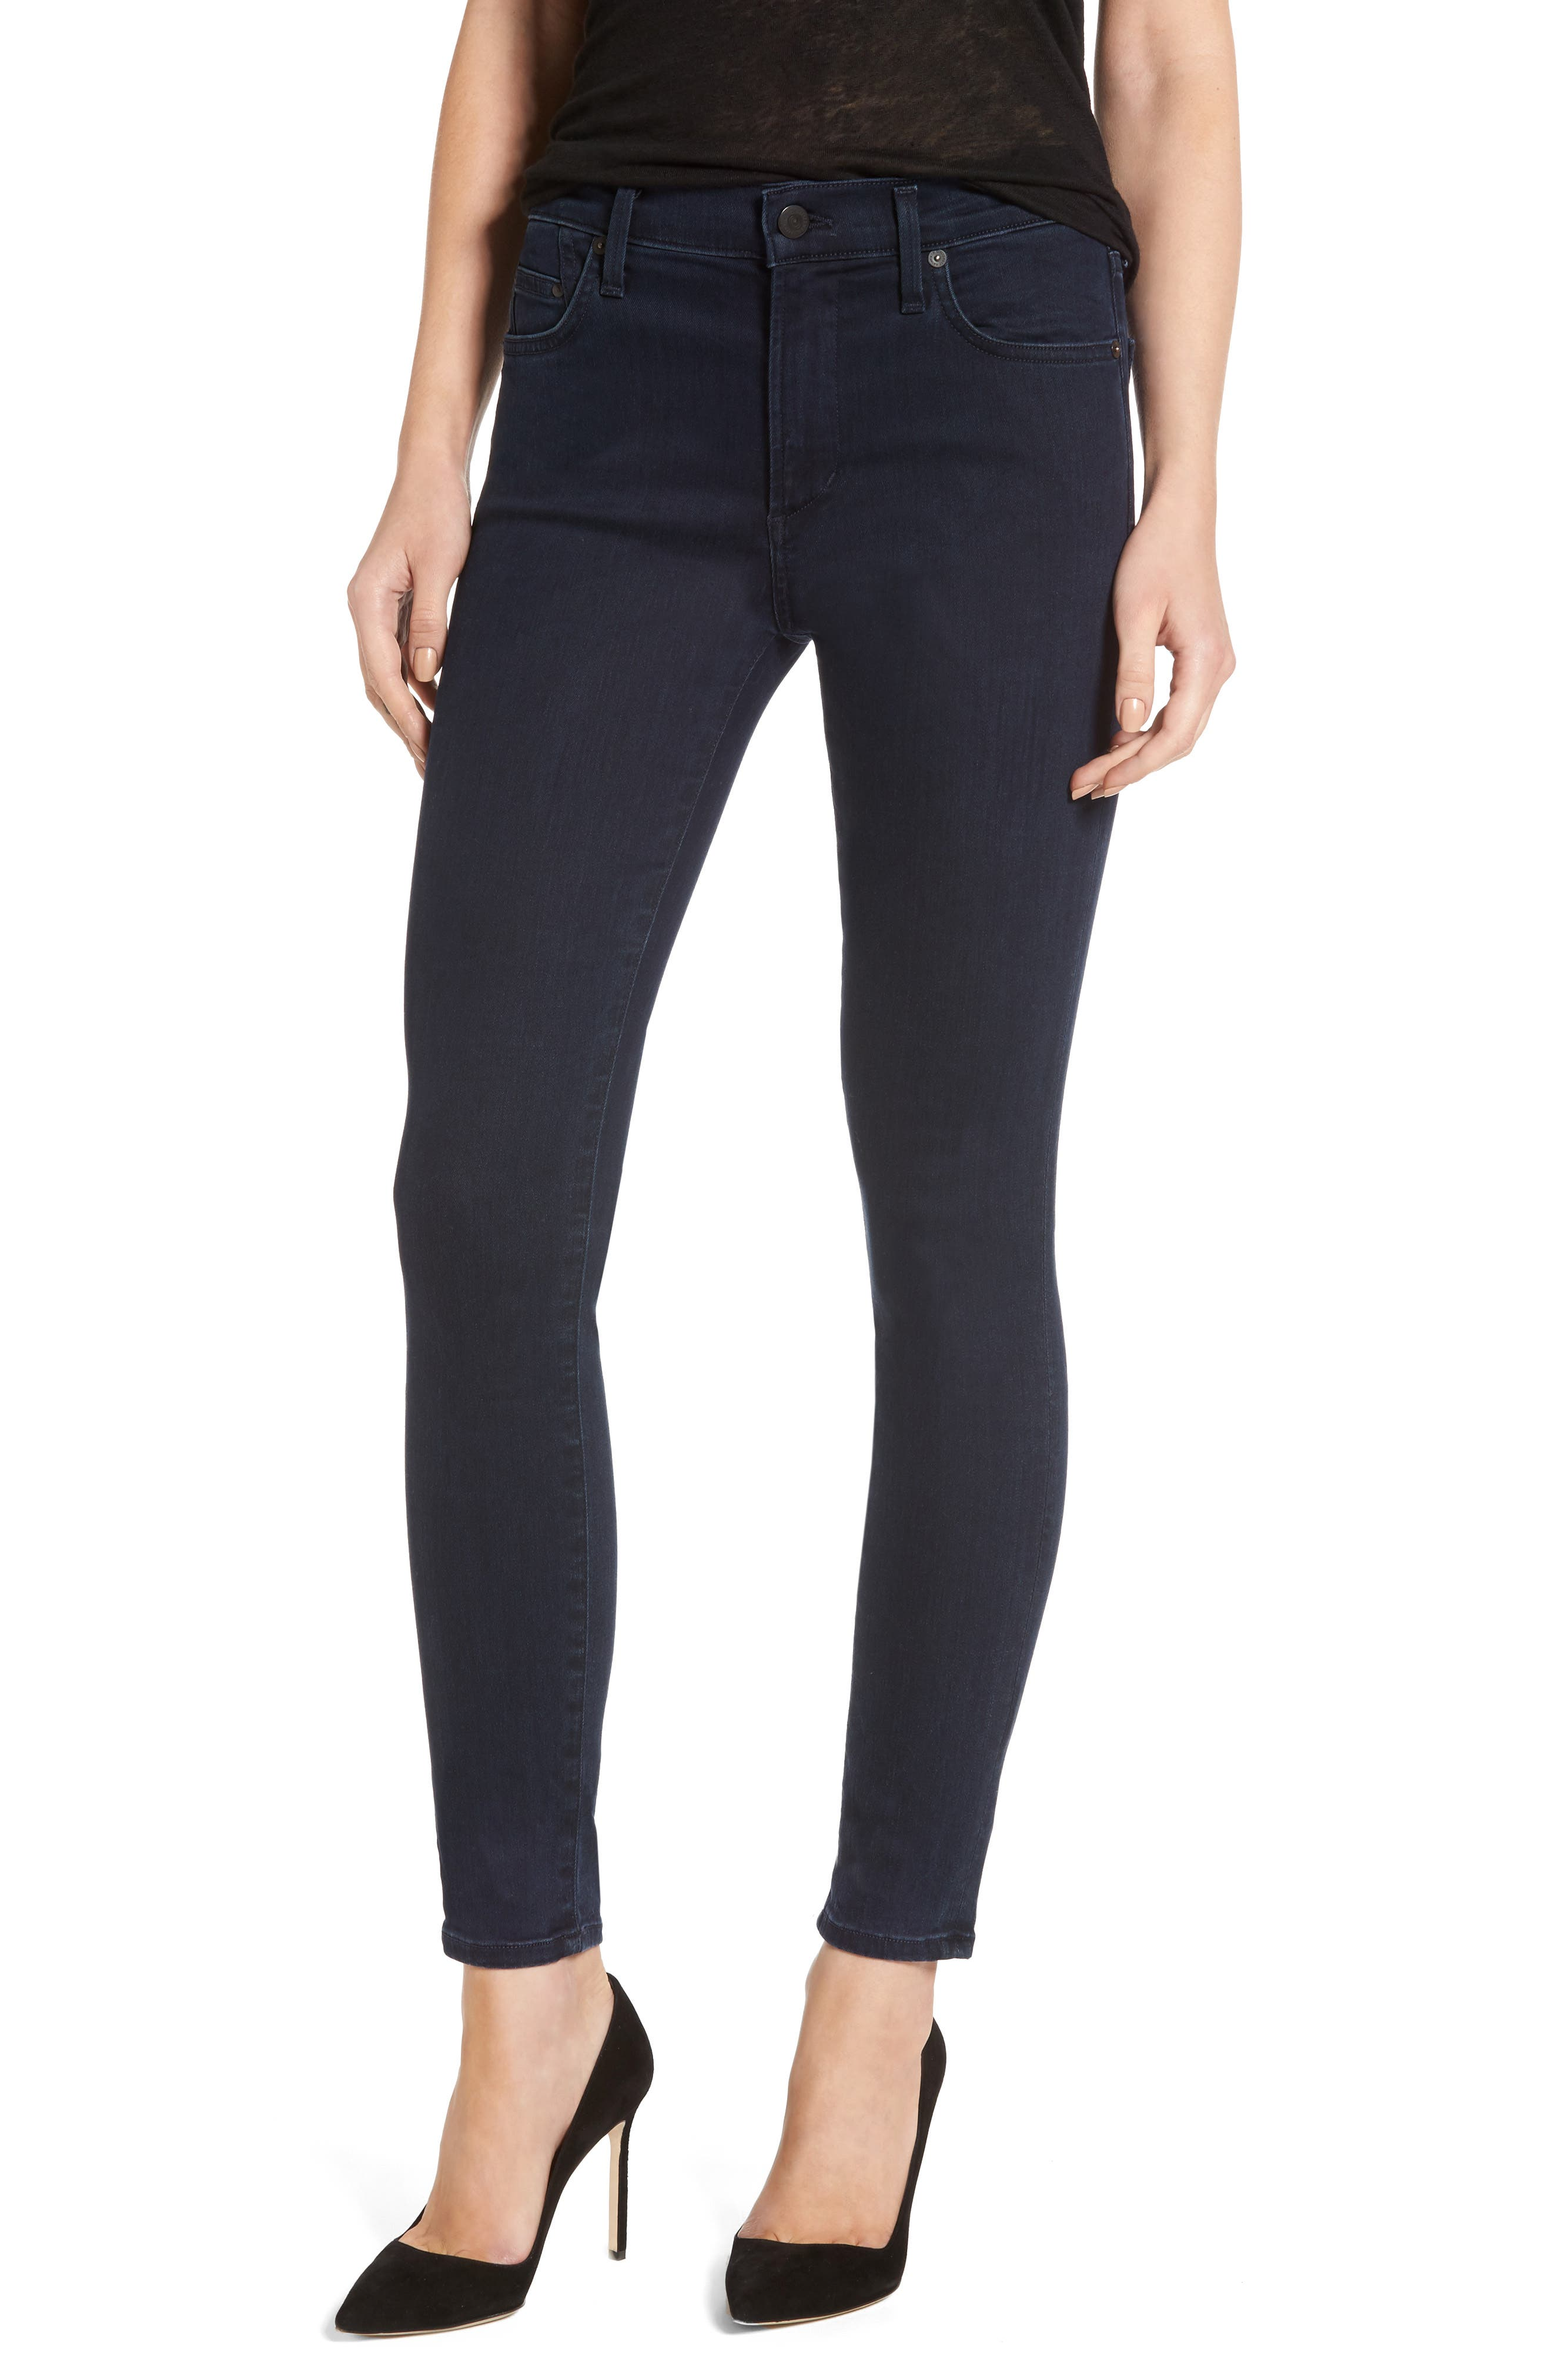 Main Image - Citizens of Humanity Rocket High Waist Skinny Jeans (Ozone Ink) (Petite)